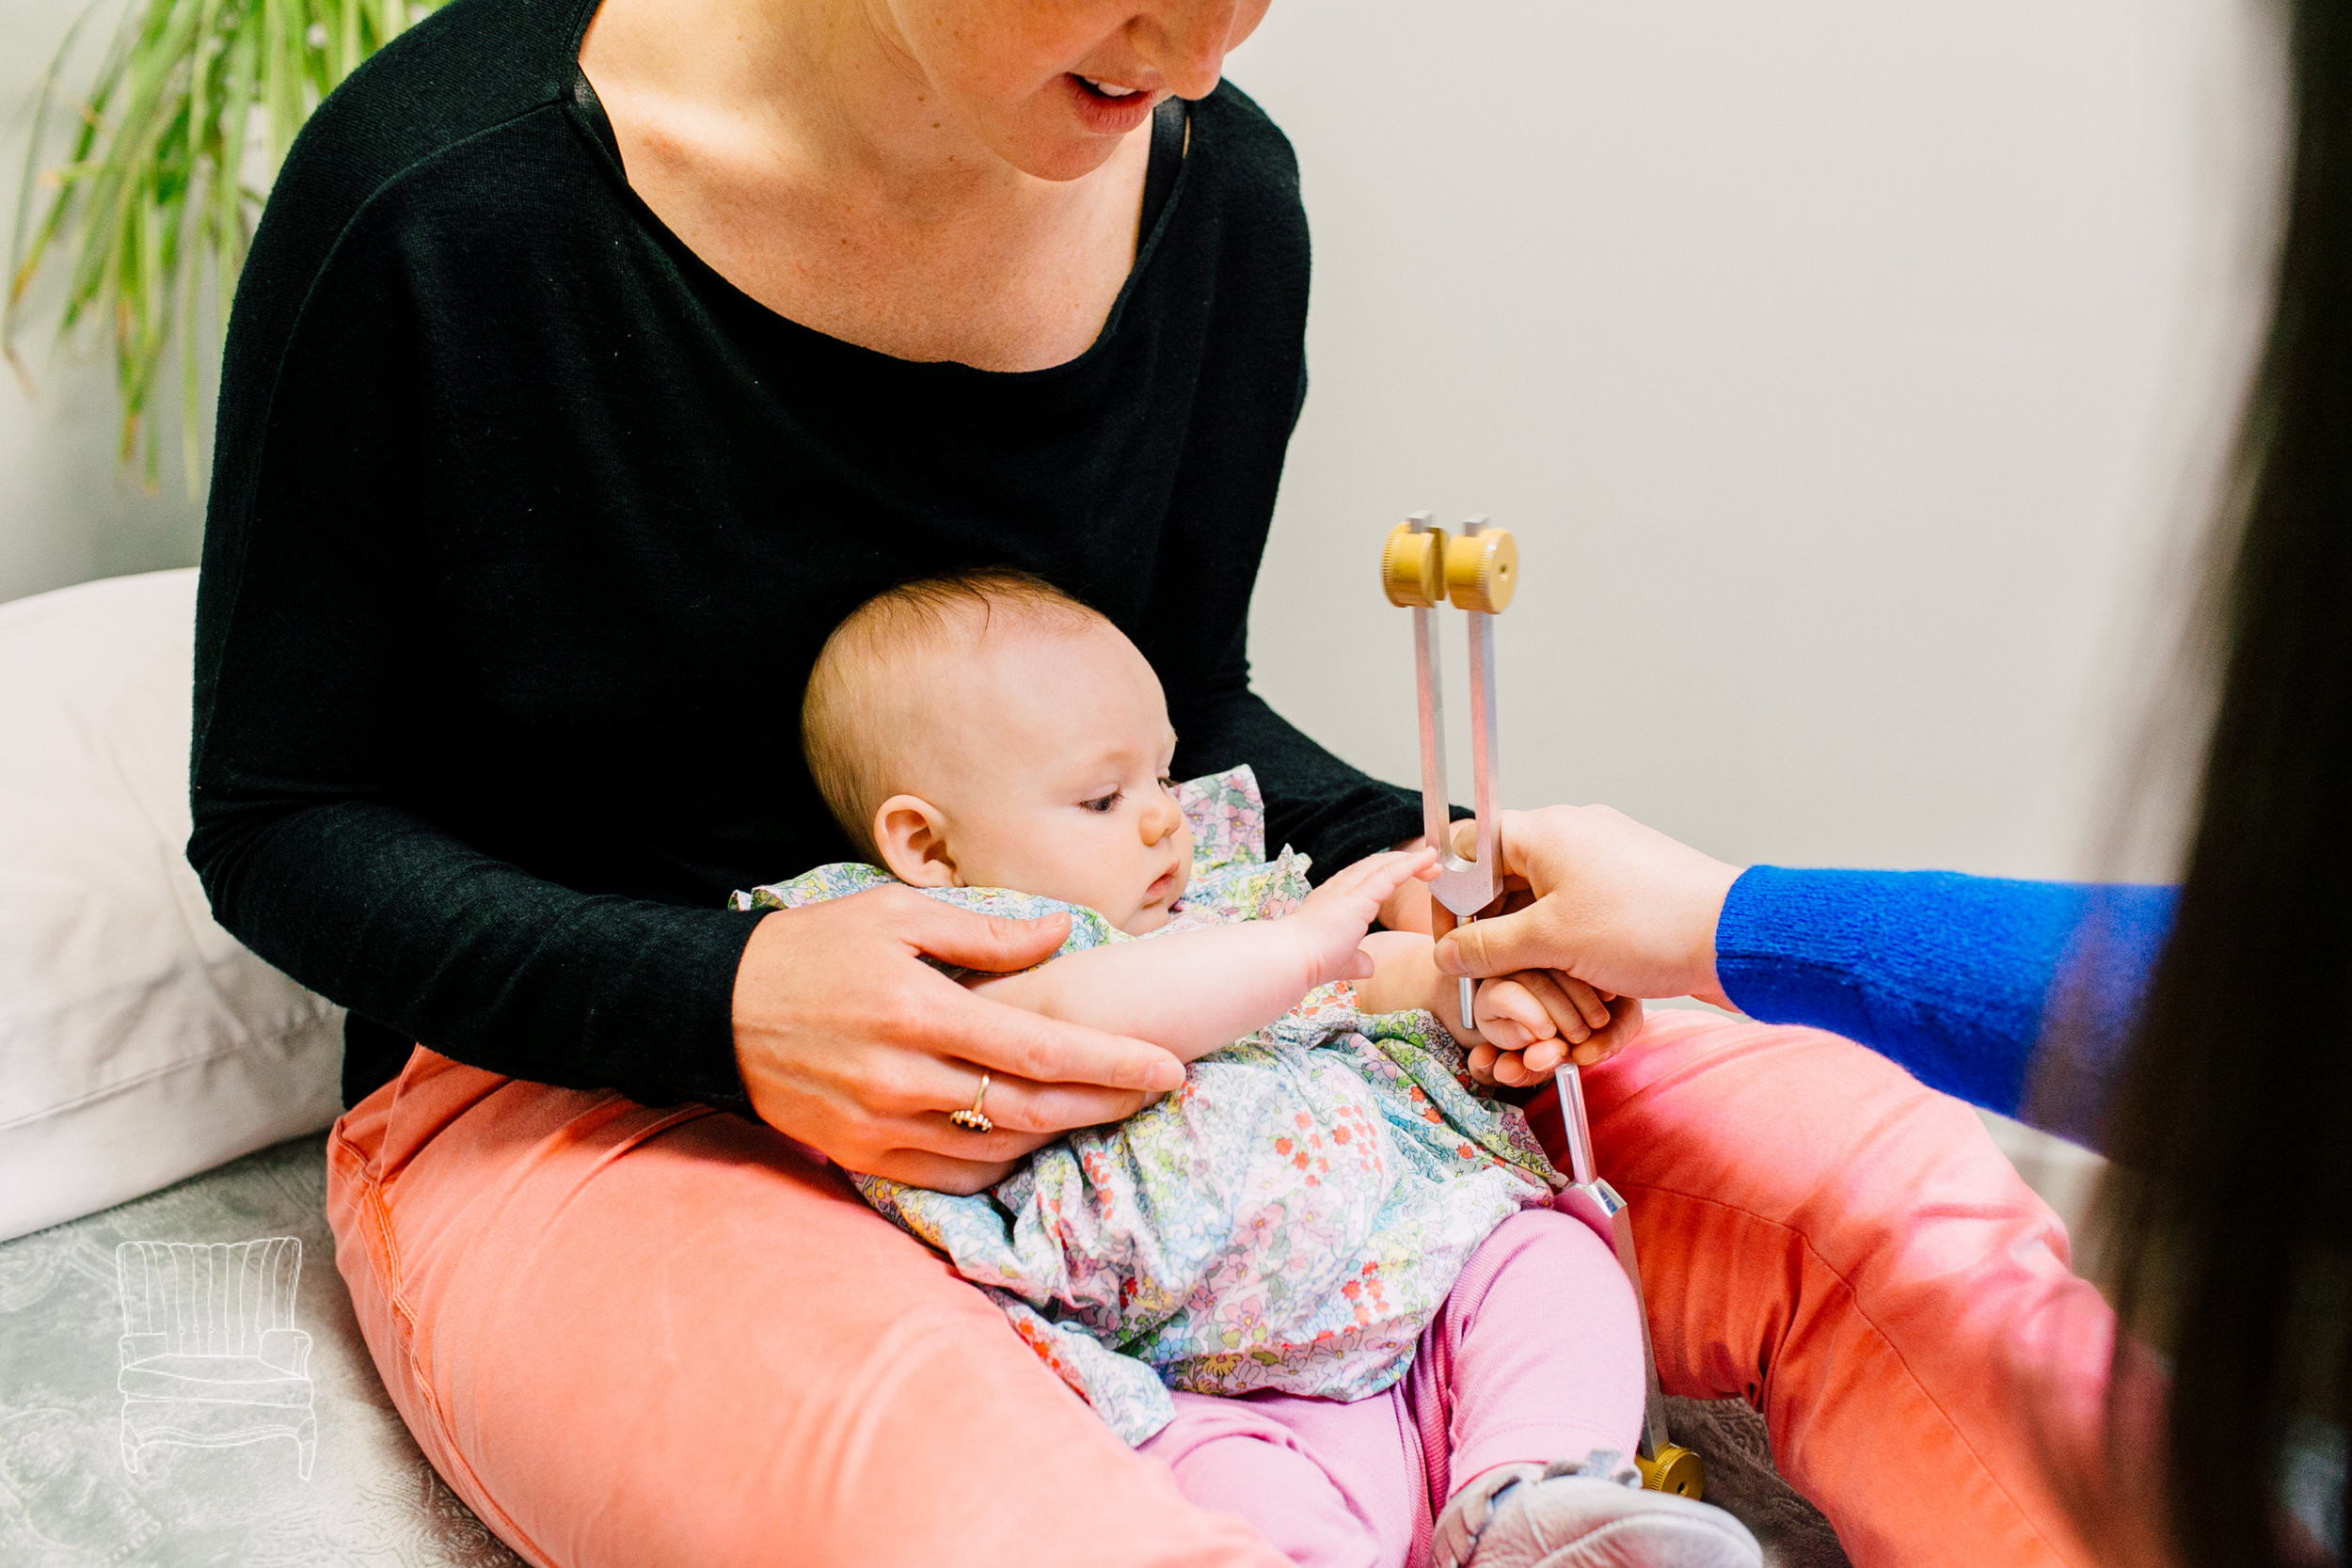 whatcom-family-acupuncture-katheryn-moran-photography-15.JPG